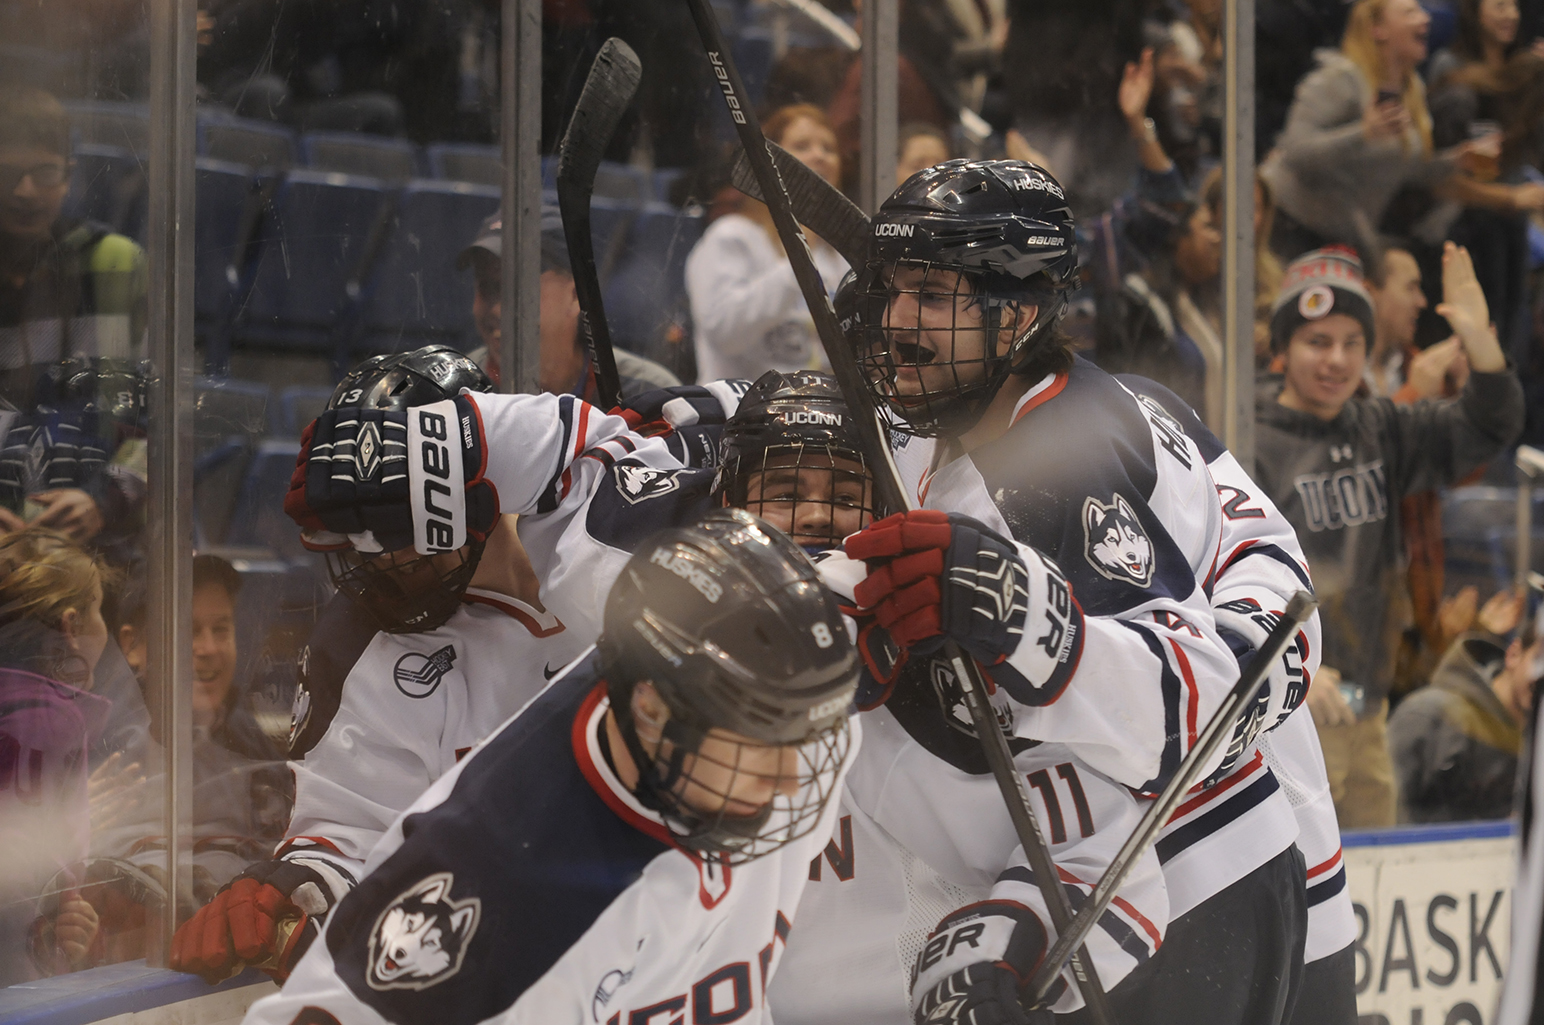 In this photo, members of the UConn men's ice hockey team are seen celebrating after a late goal that earned them a 1-0 victory over Merrimack at the XL Center in Hartford, Connecticut on Feb. 10, 2015. (File Photo/The Daily Campus)